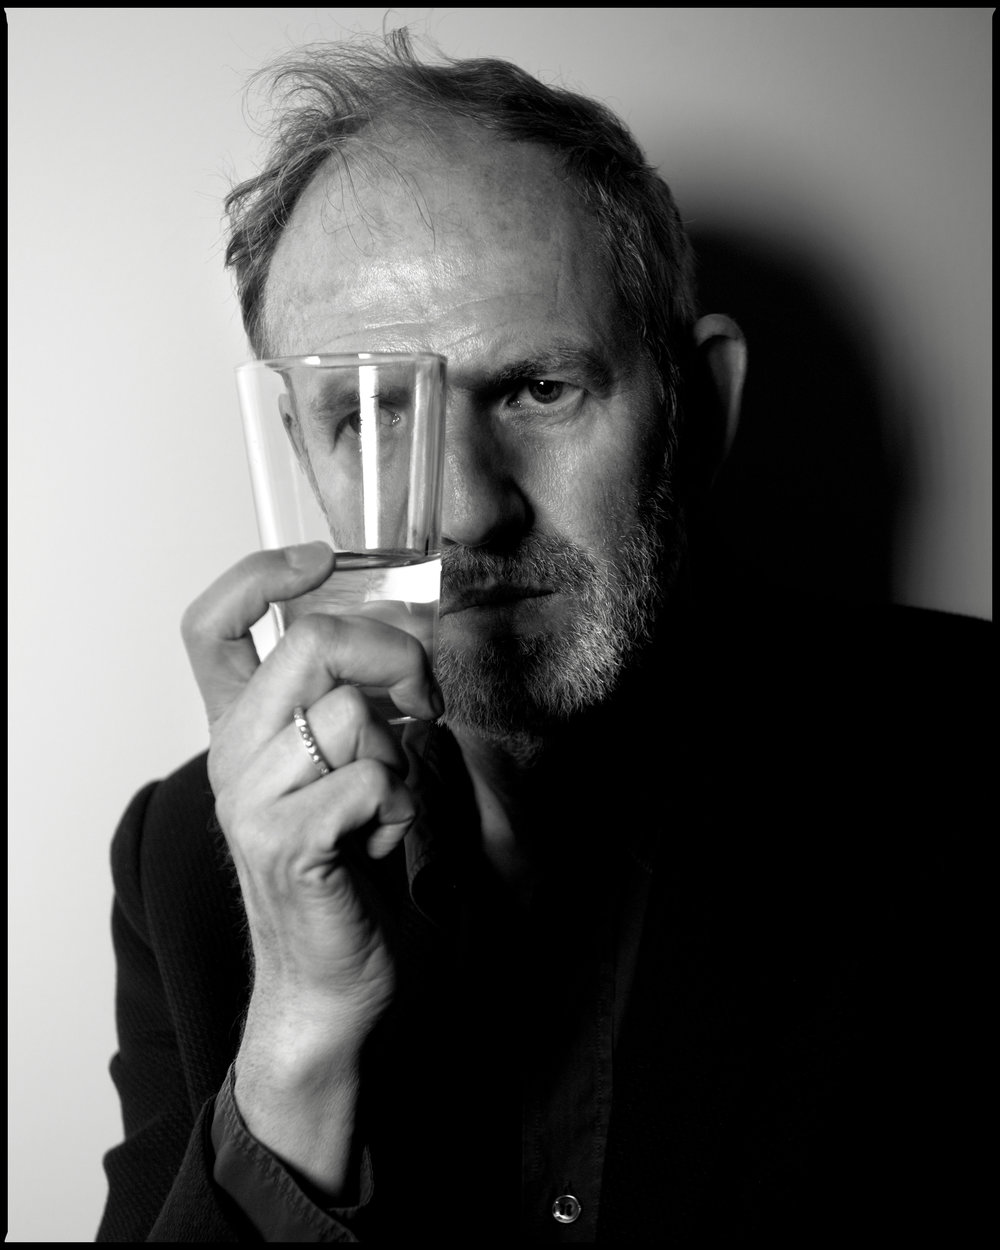 Anton Corbijn - <br>Photographer, Film Director